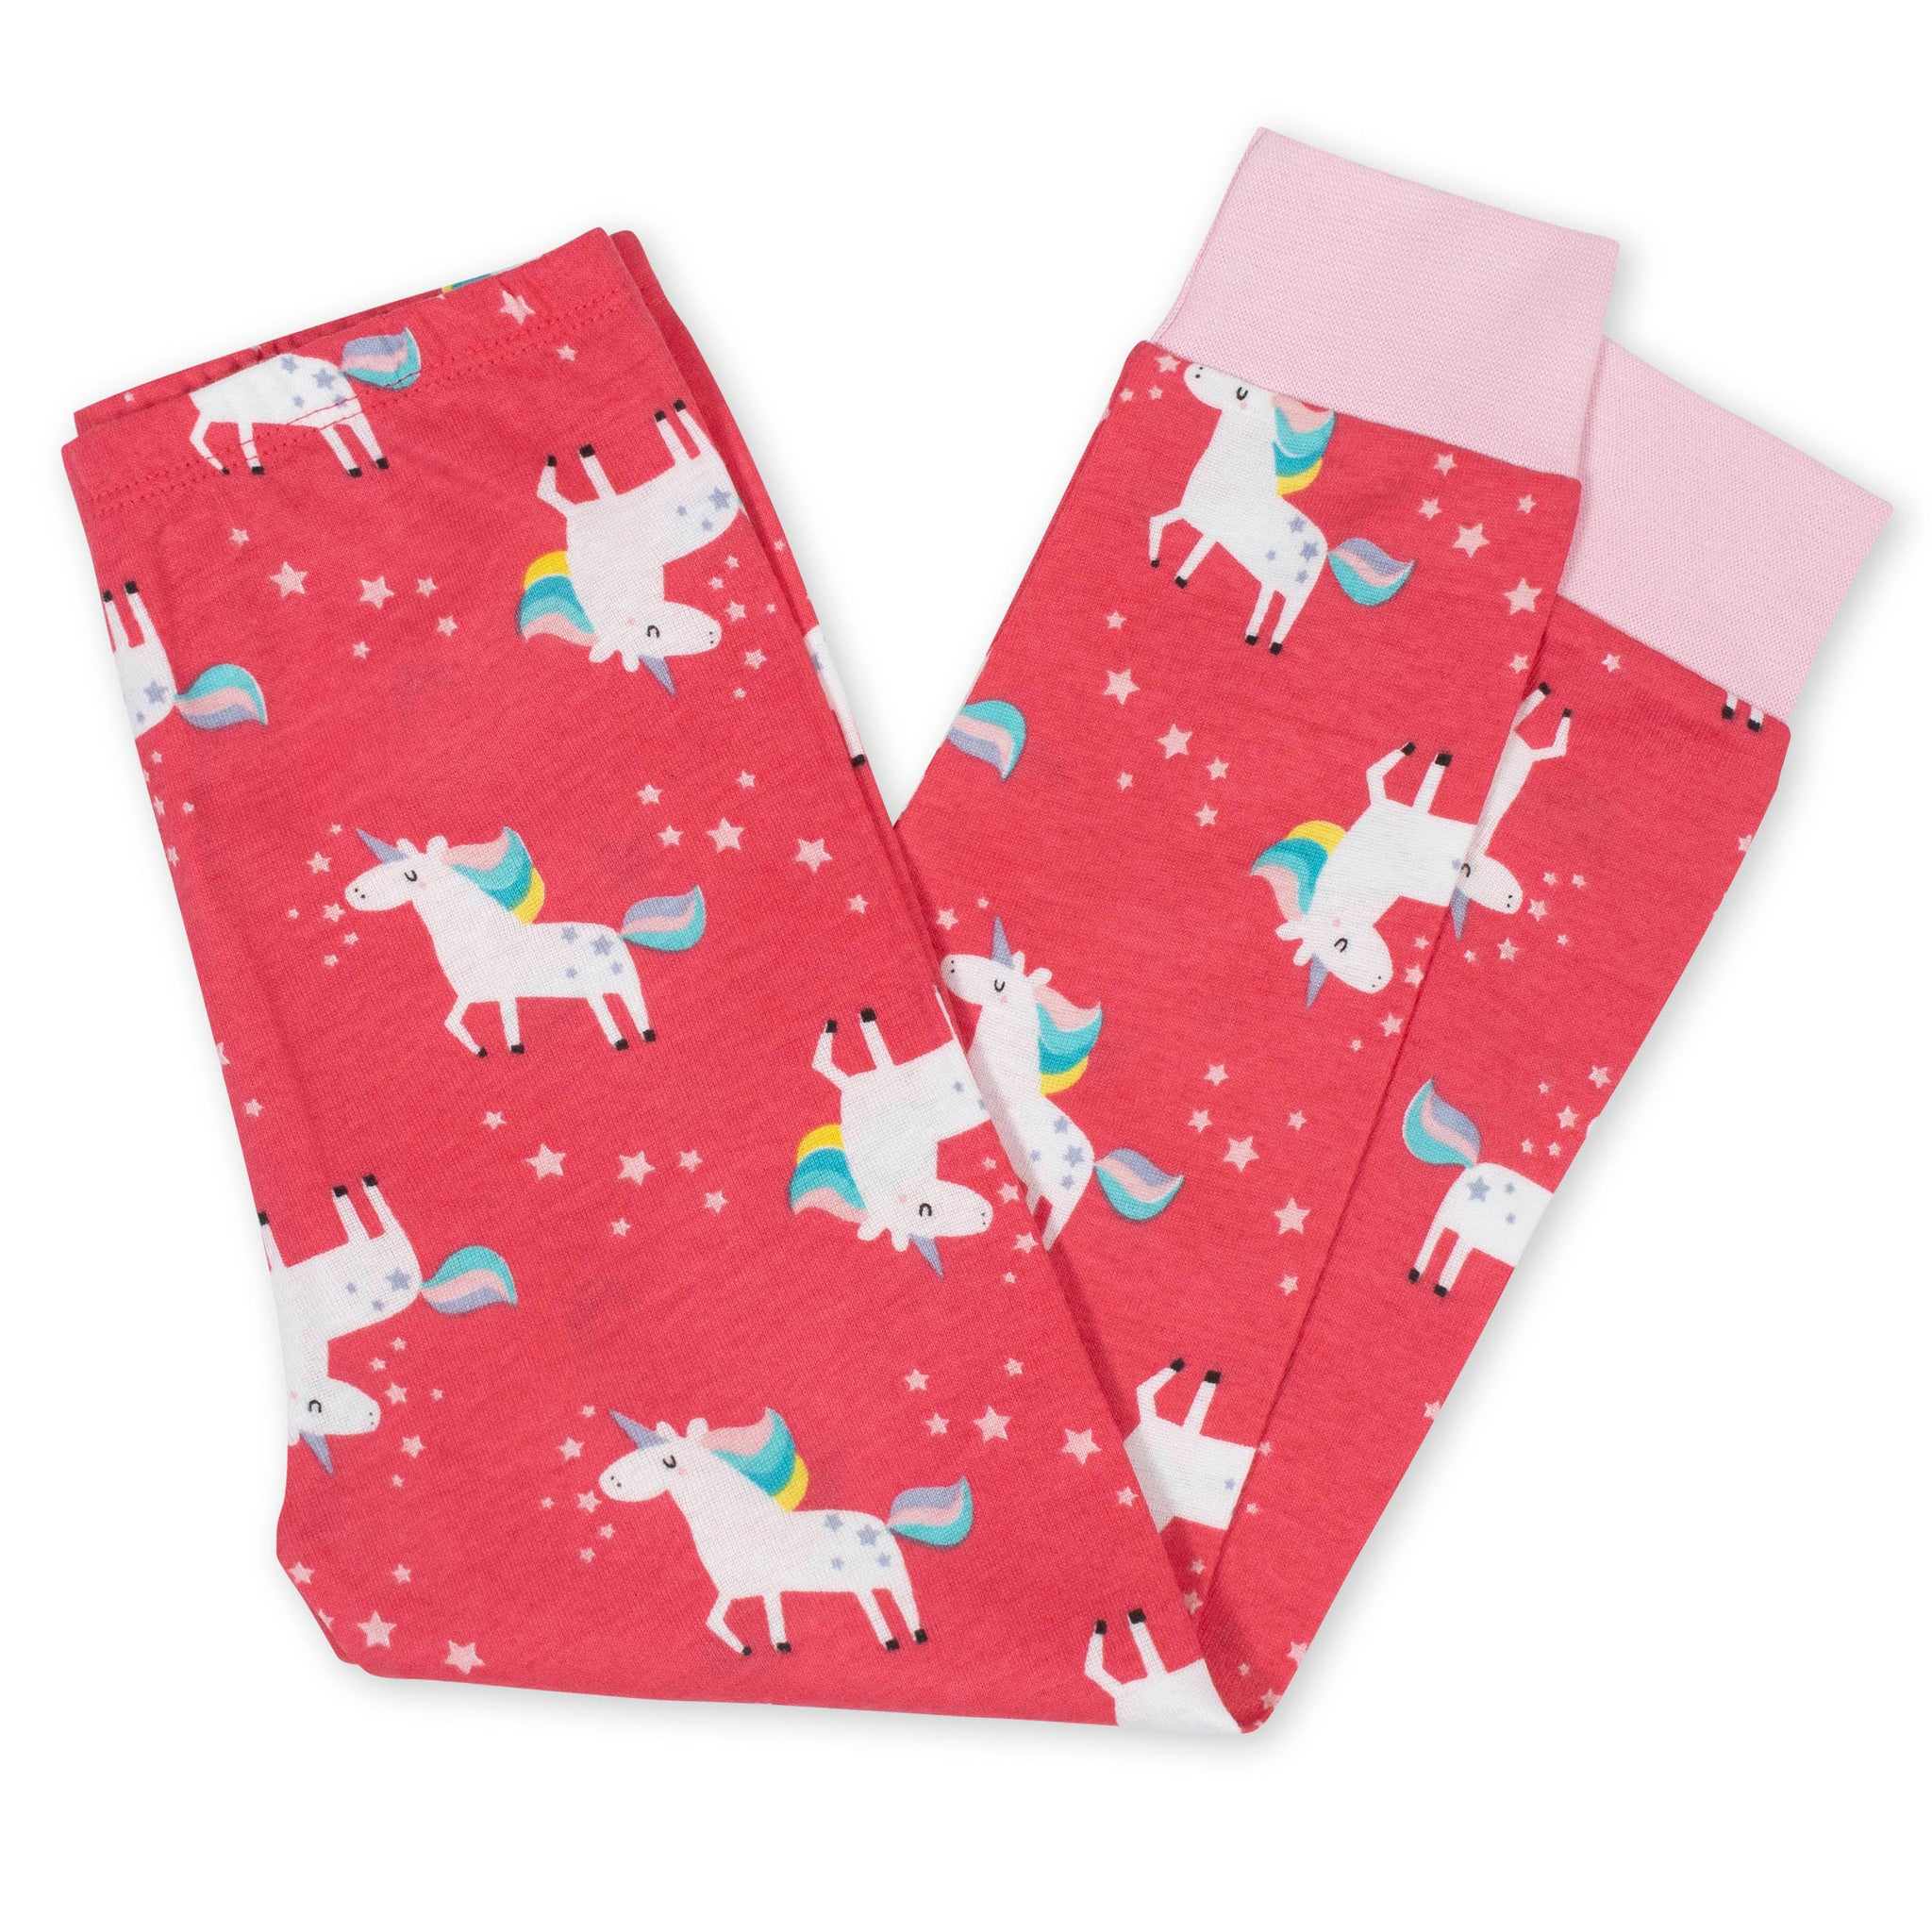 4-Piece Girls Unicorn Cotton Pajamas-Gerber Childrenswear Wholesale